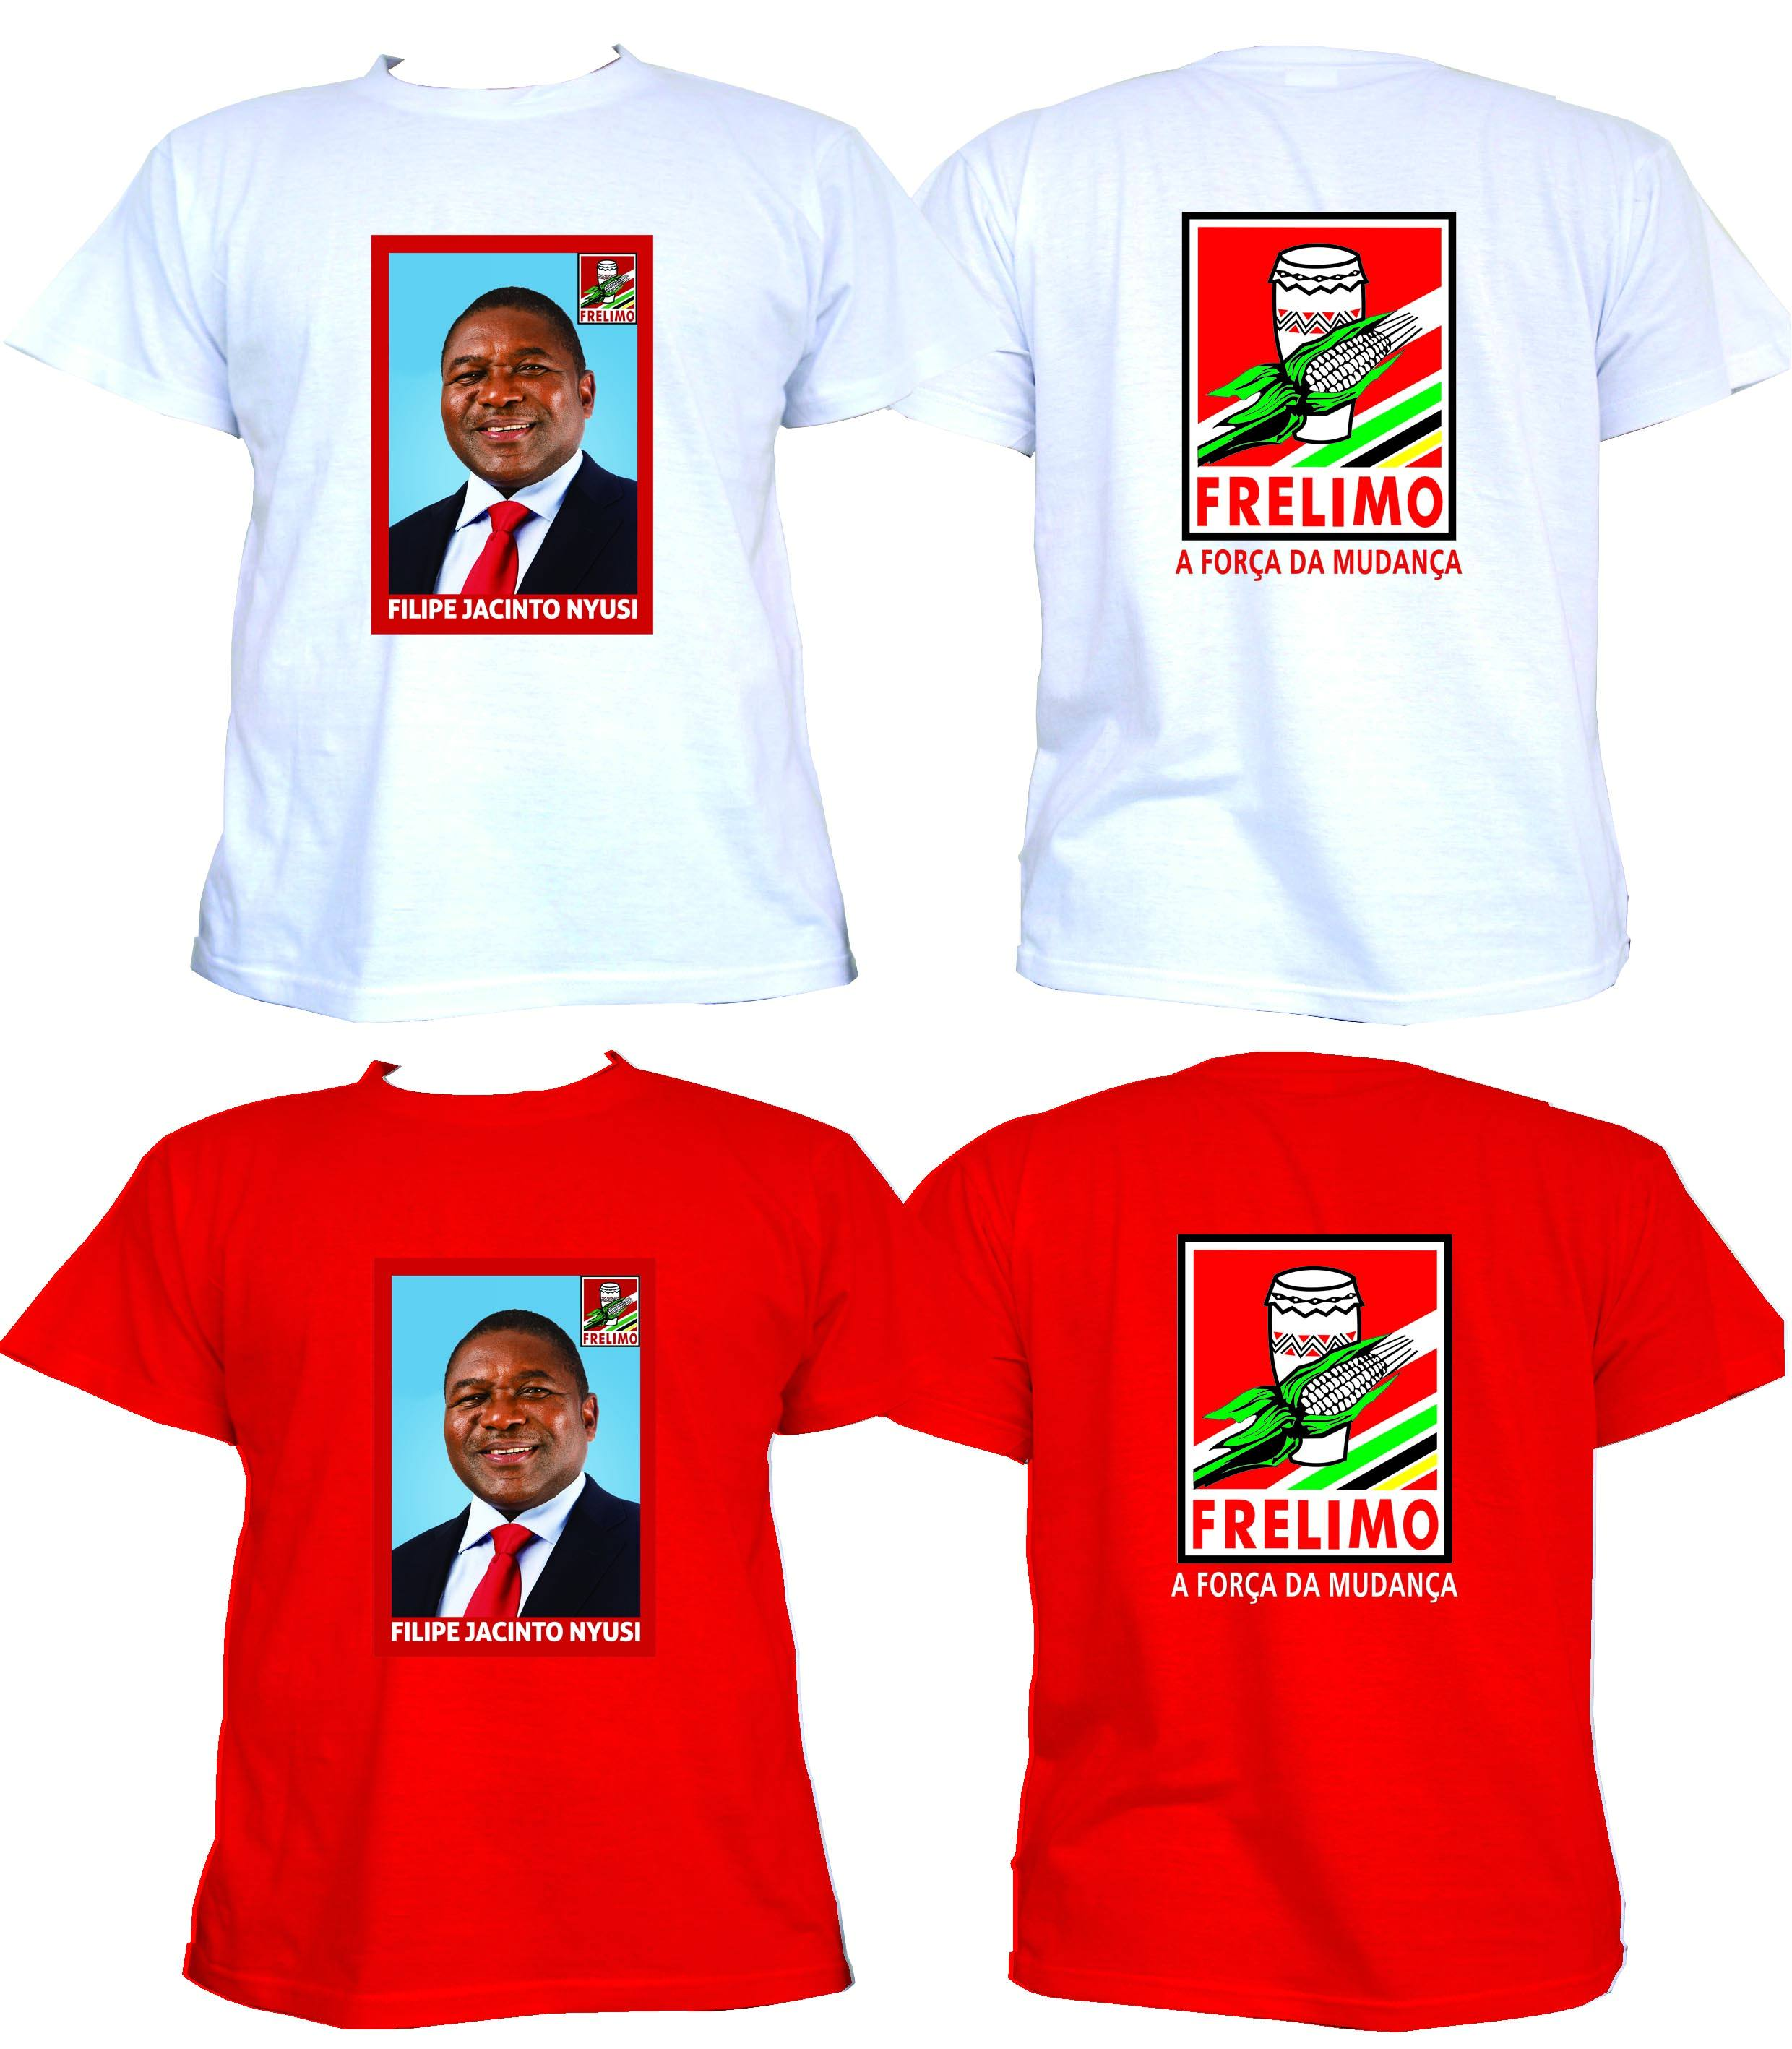 Election campaign t-shirts for president t-shirts caps for mozambique campaign made in China